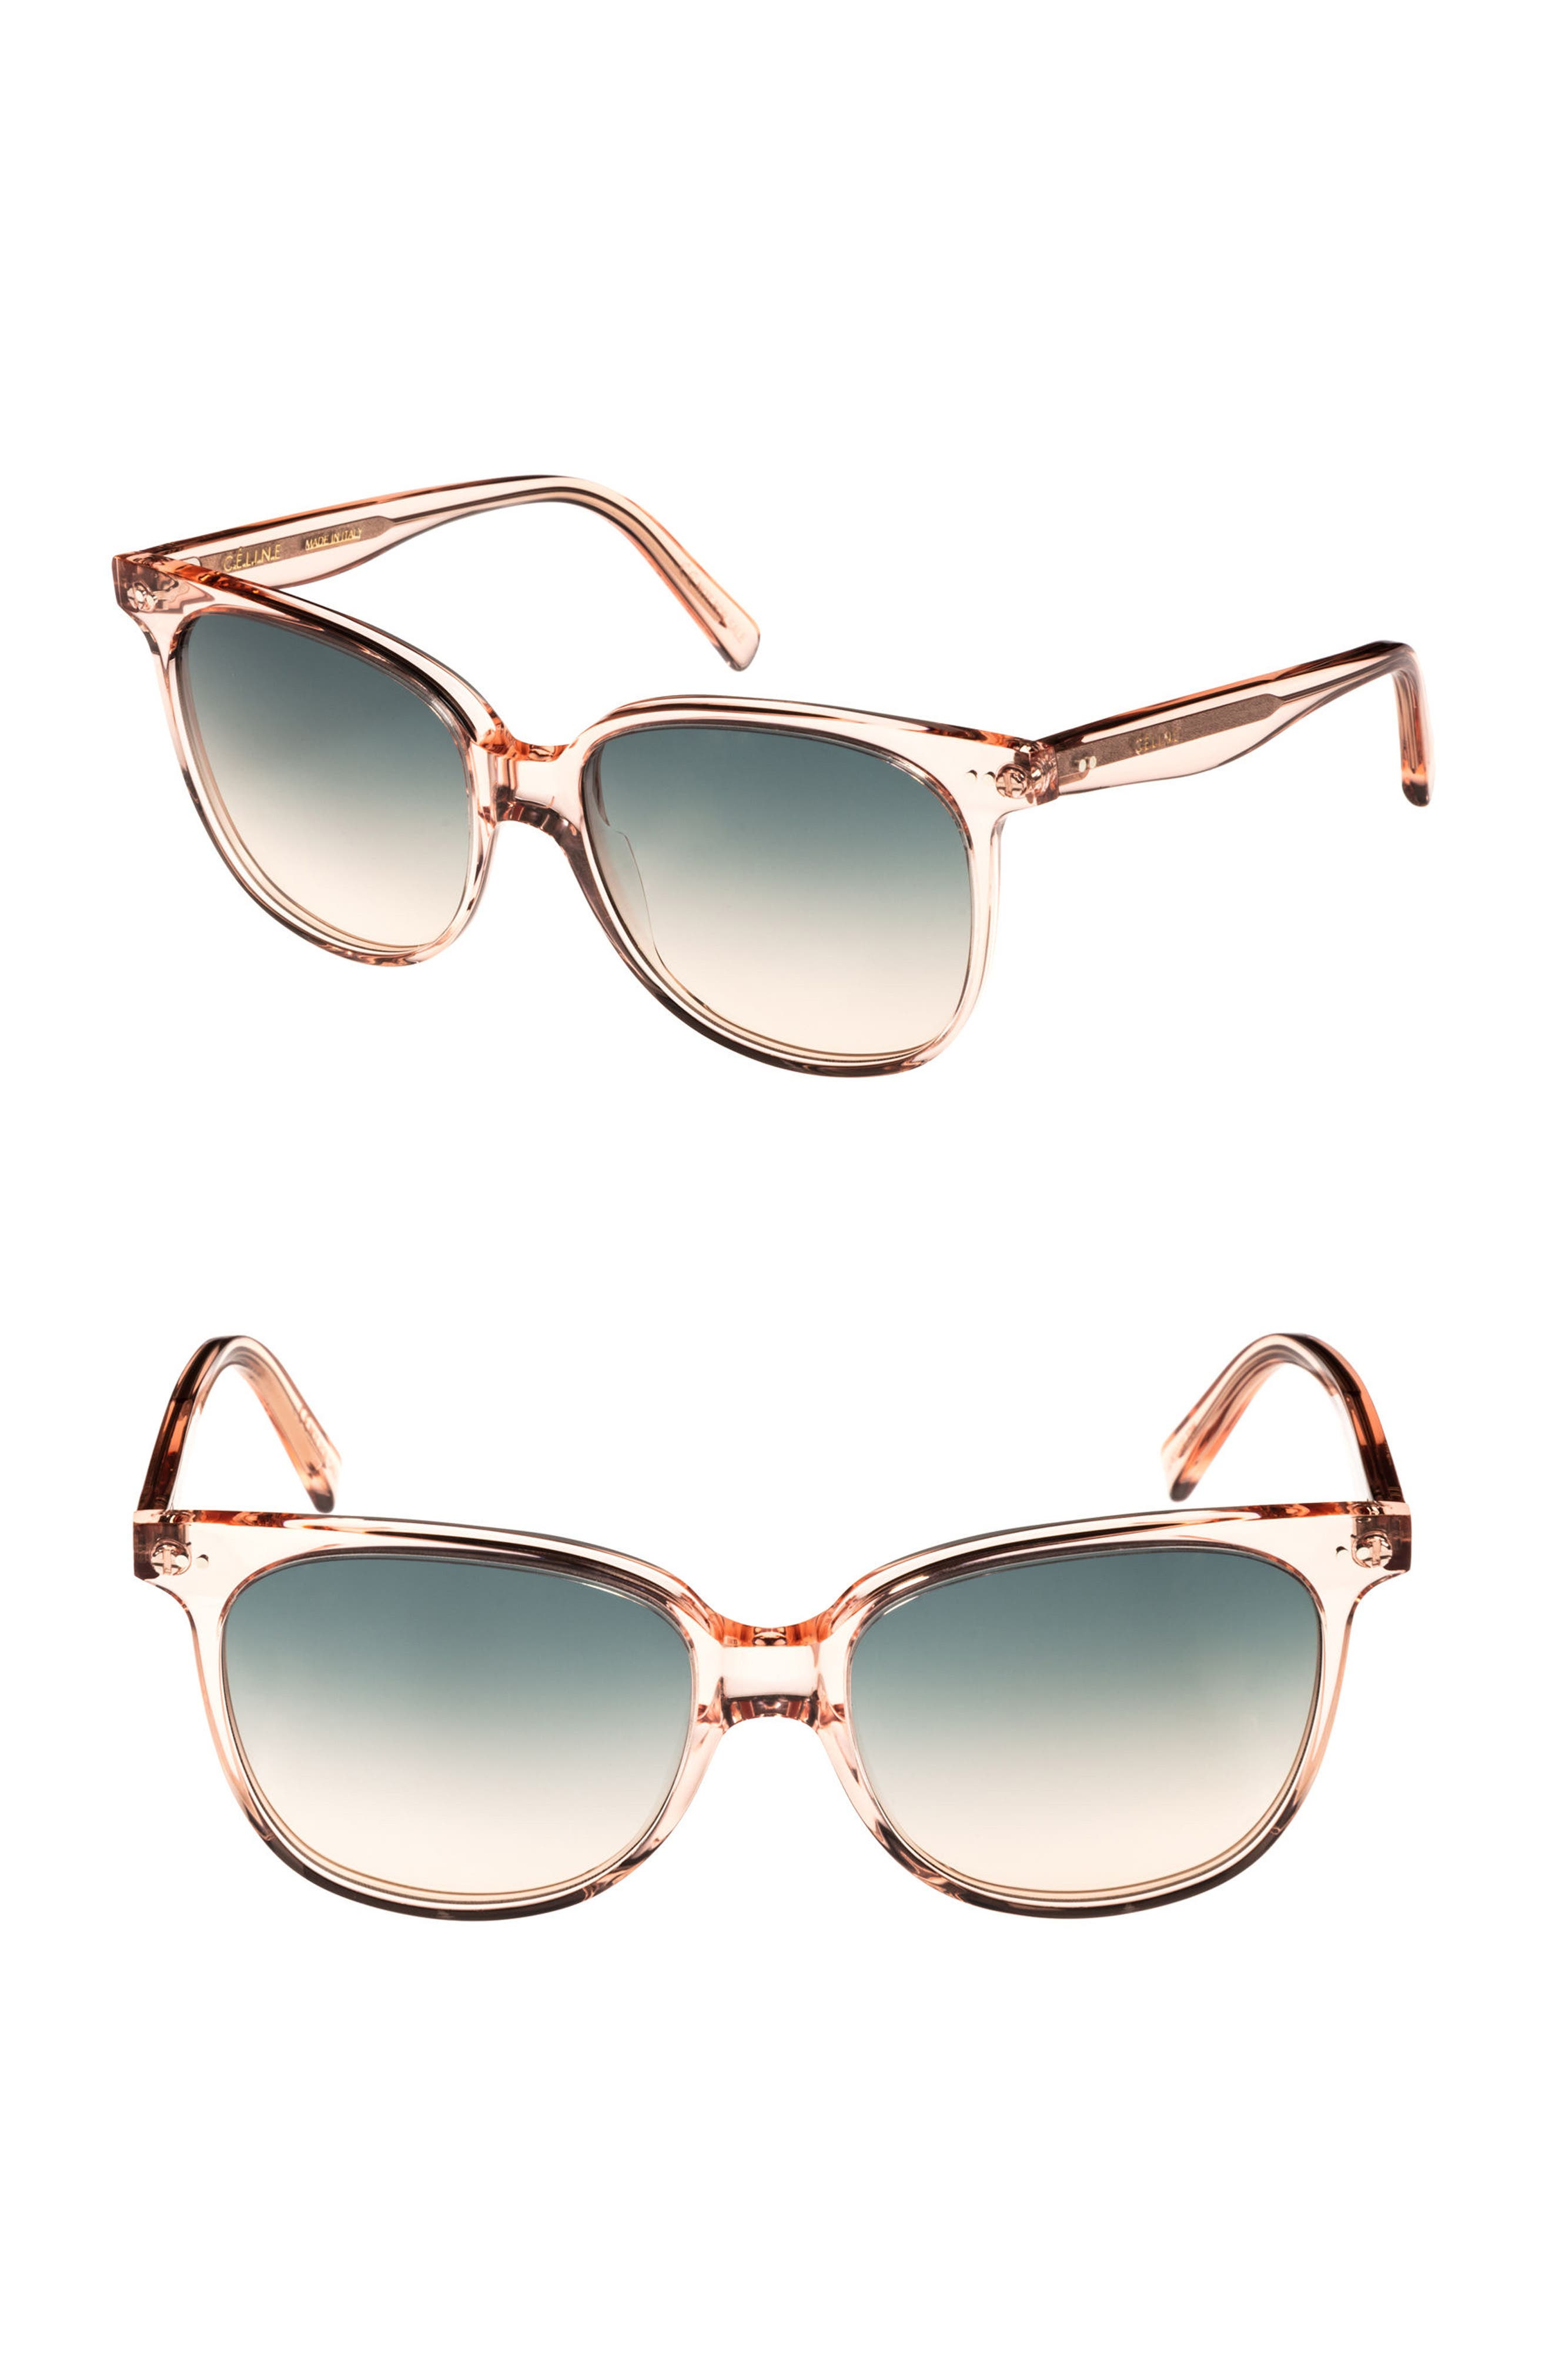 57mm Square Sunglasses,                         Main,                         color, Baby Pink/ Turquoise